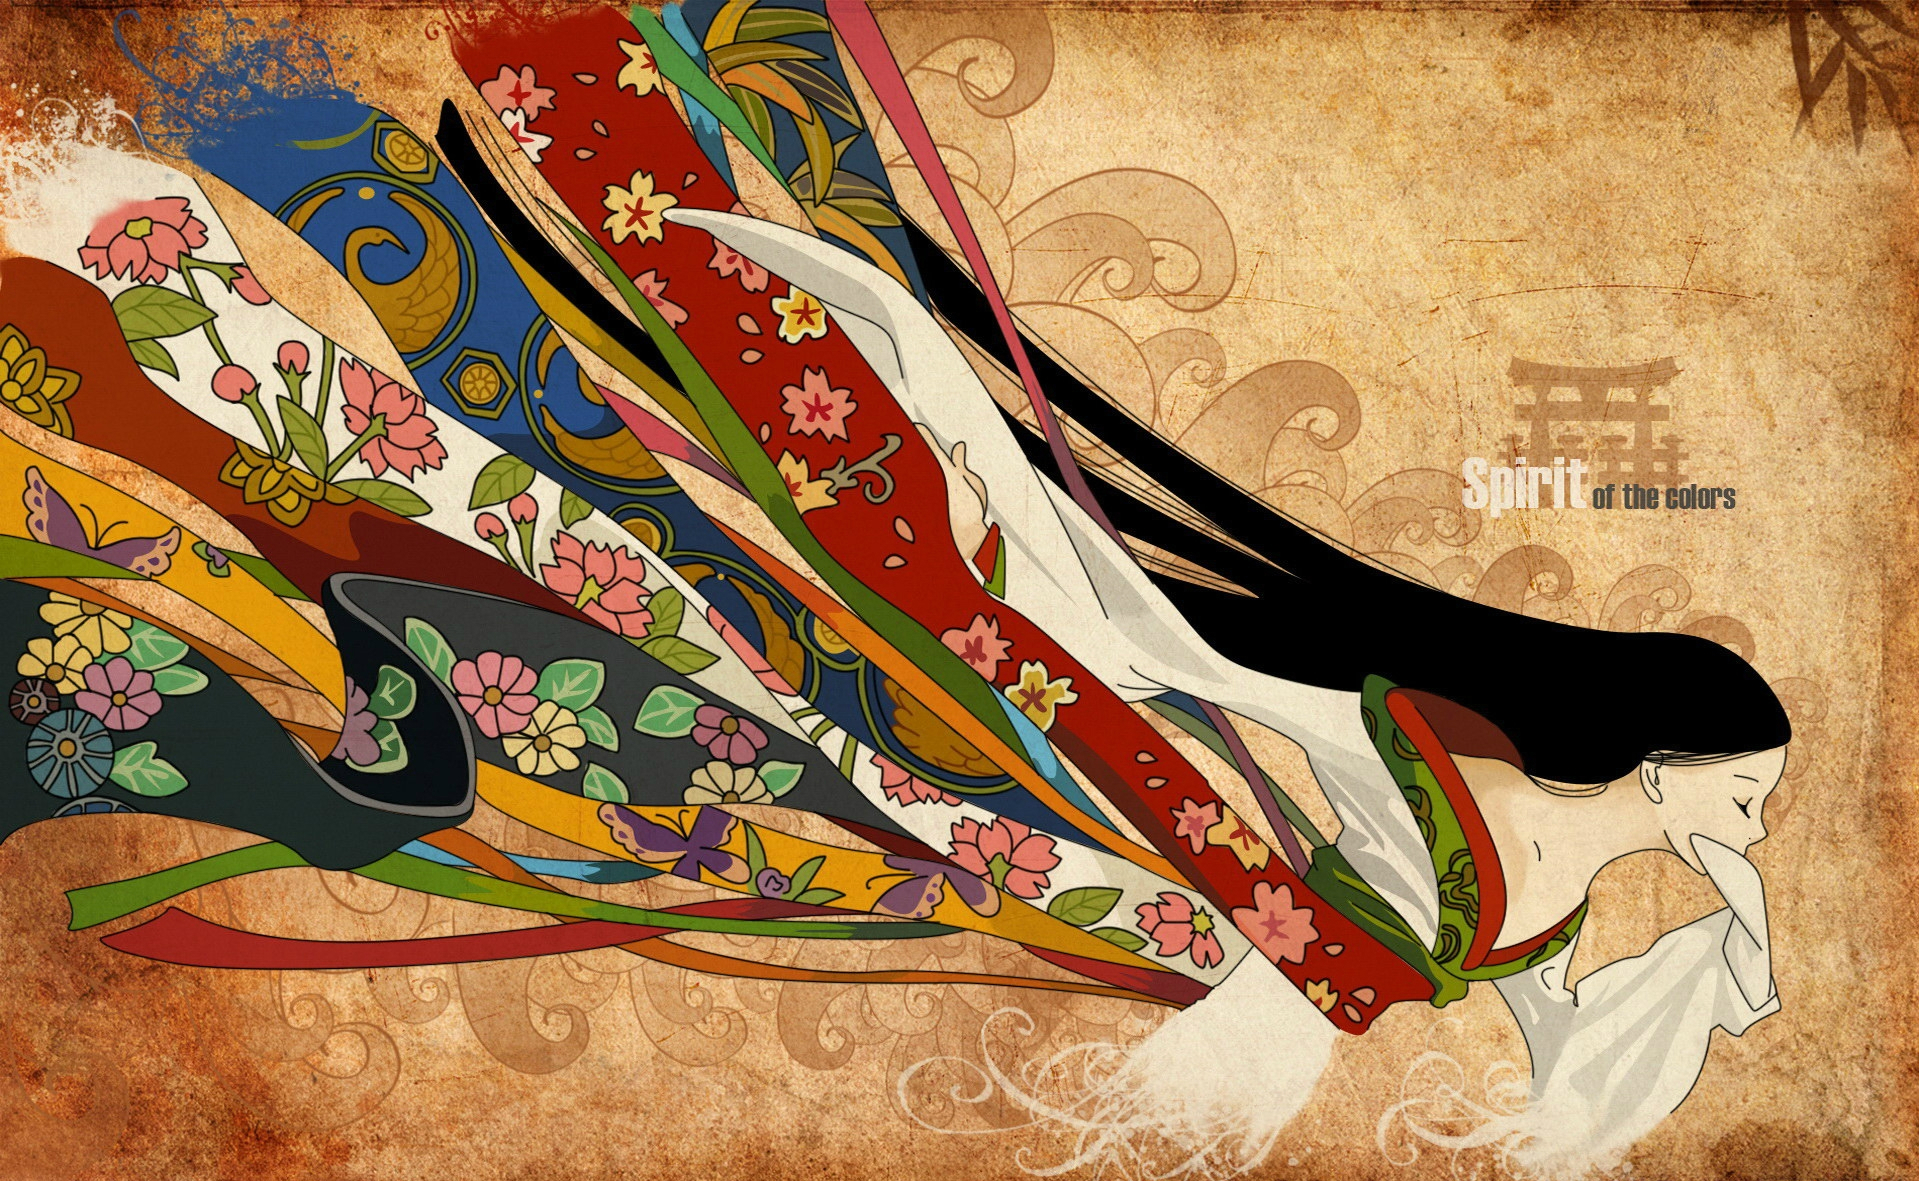 Artistic asians images 29